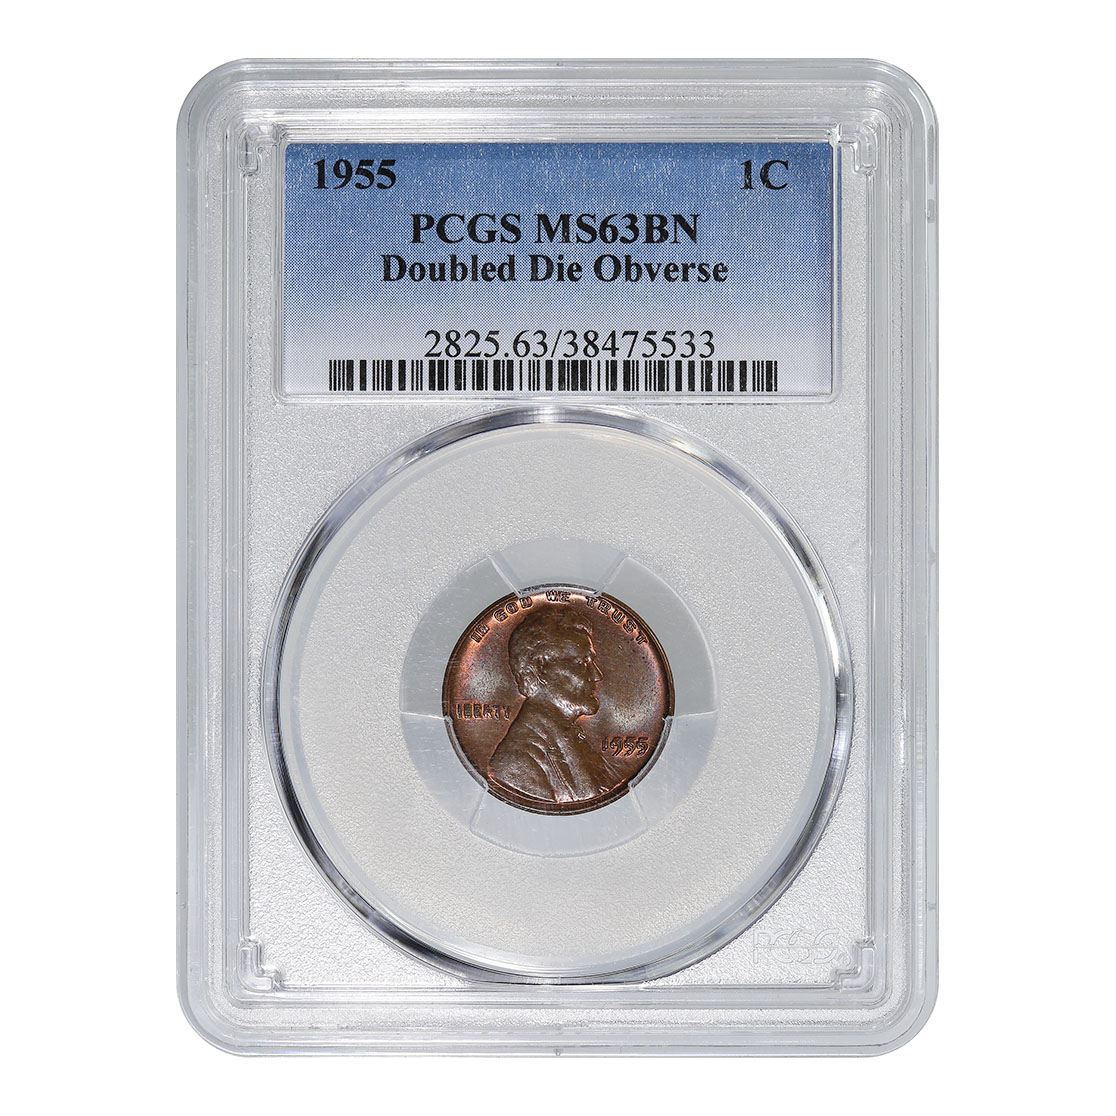 Certified Lincoln Cent 1955 Double Die Obverse MS63BN PCGS